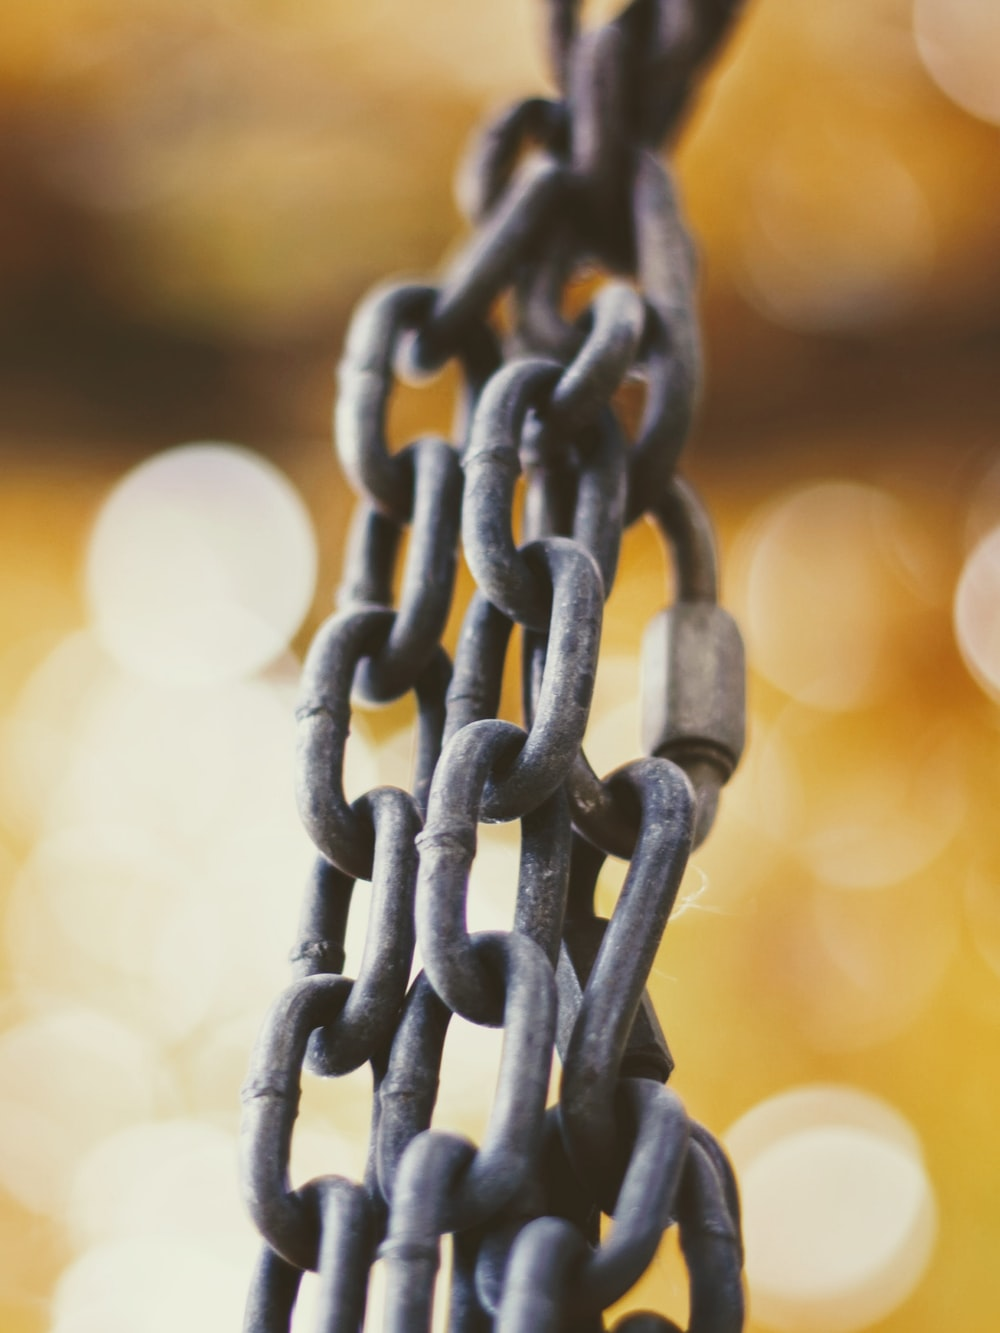 brown metal chain in focus photography